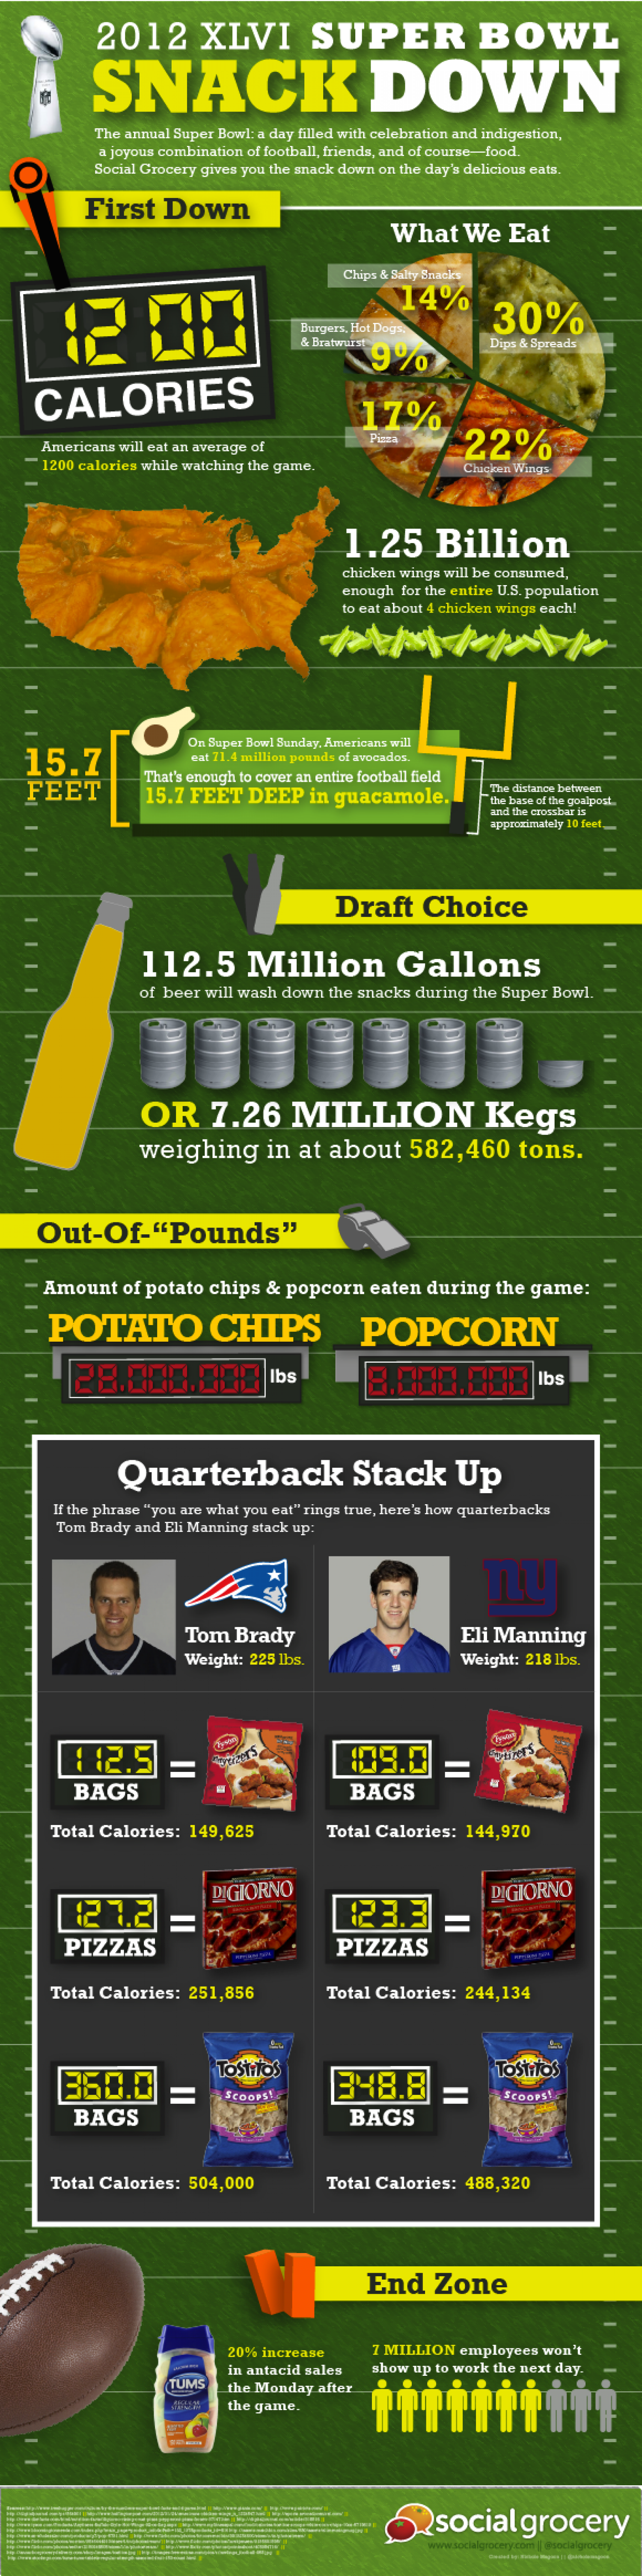 Social Grocery's 2012 XLVI Super Bowl Snackdown Infographic